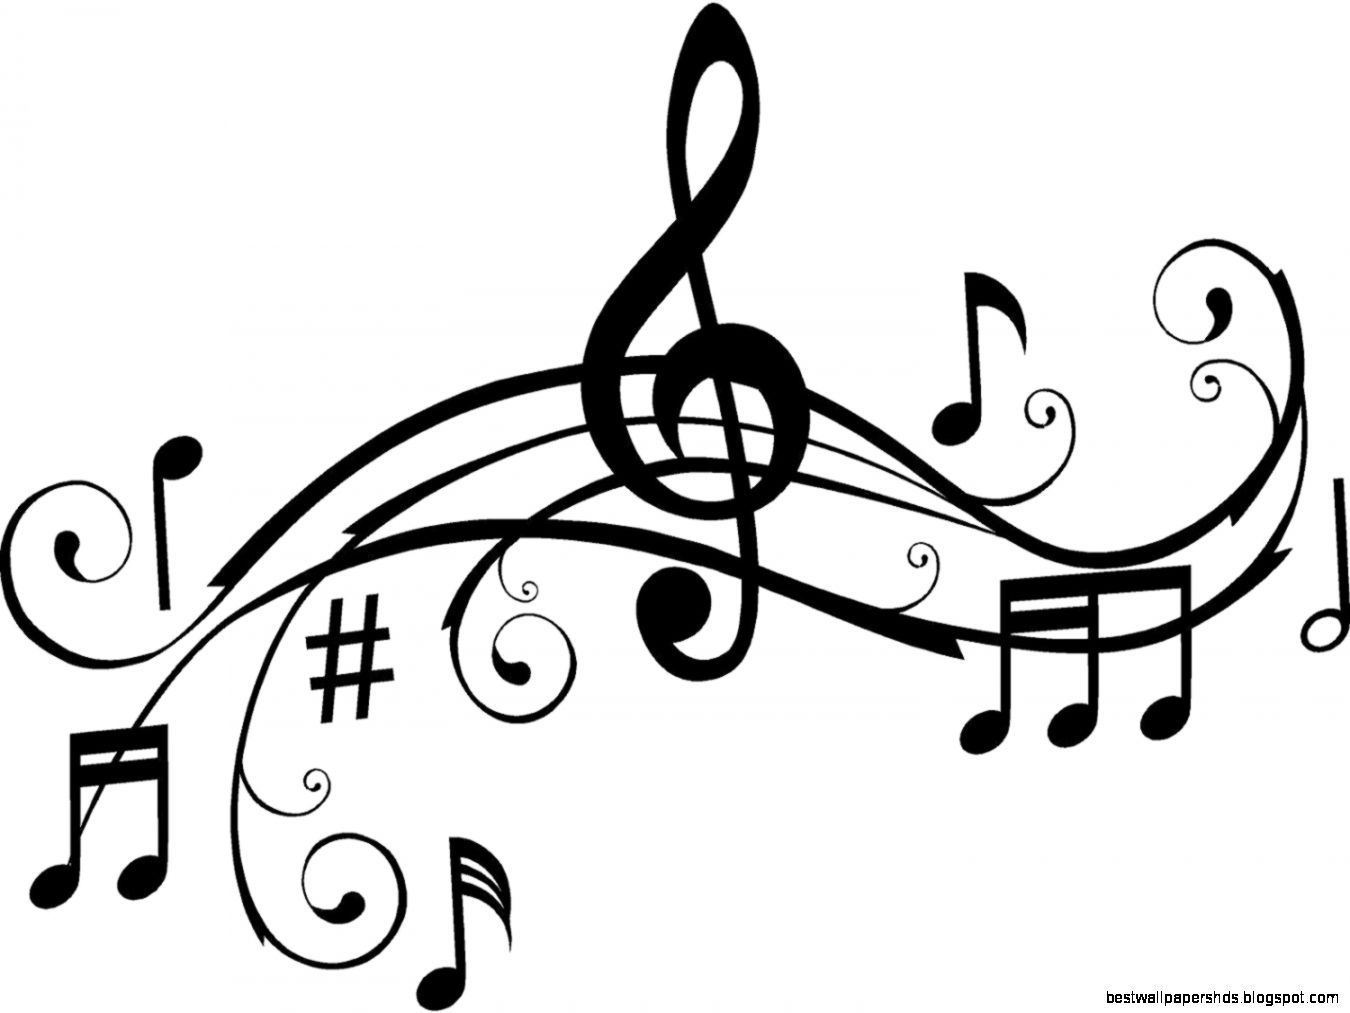 Music Notes Clipart Black And White Clipart Panda Free Clipart ... image black and white